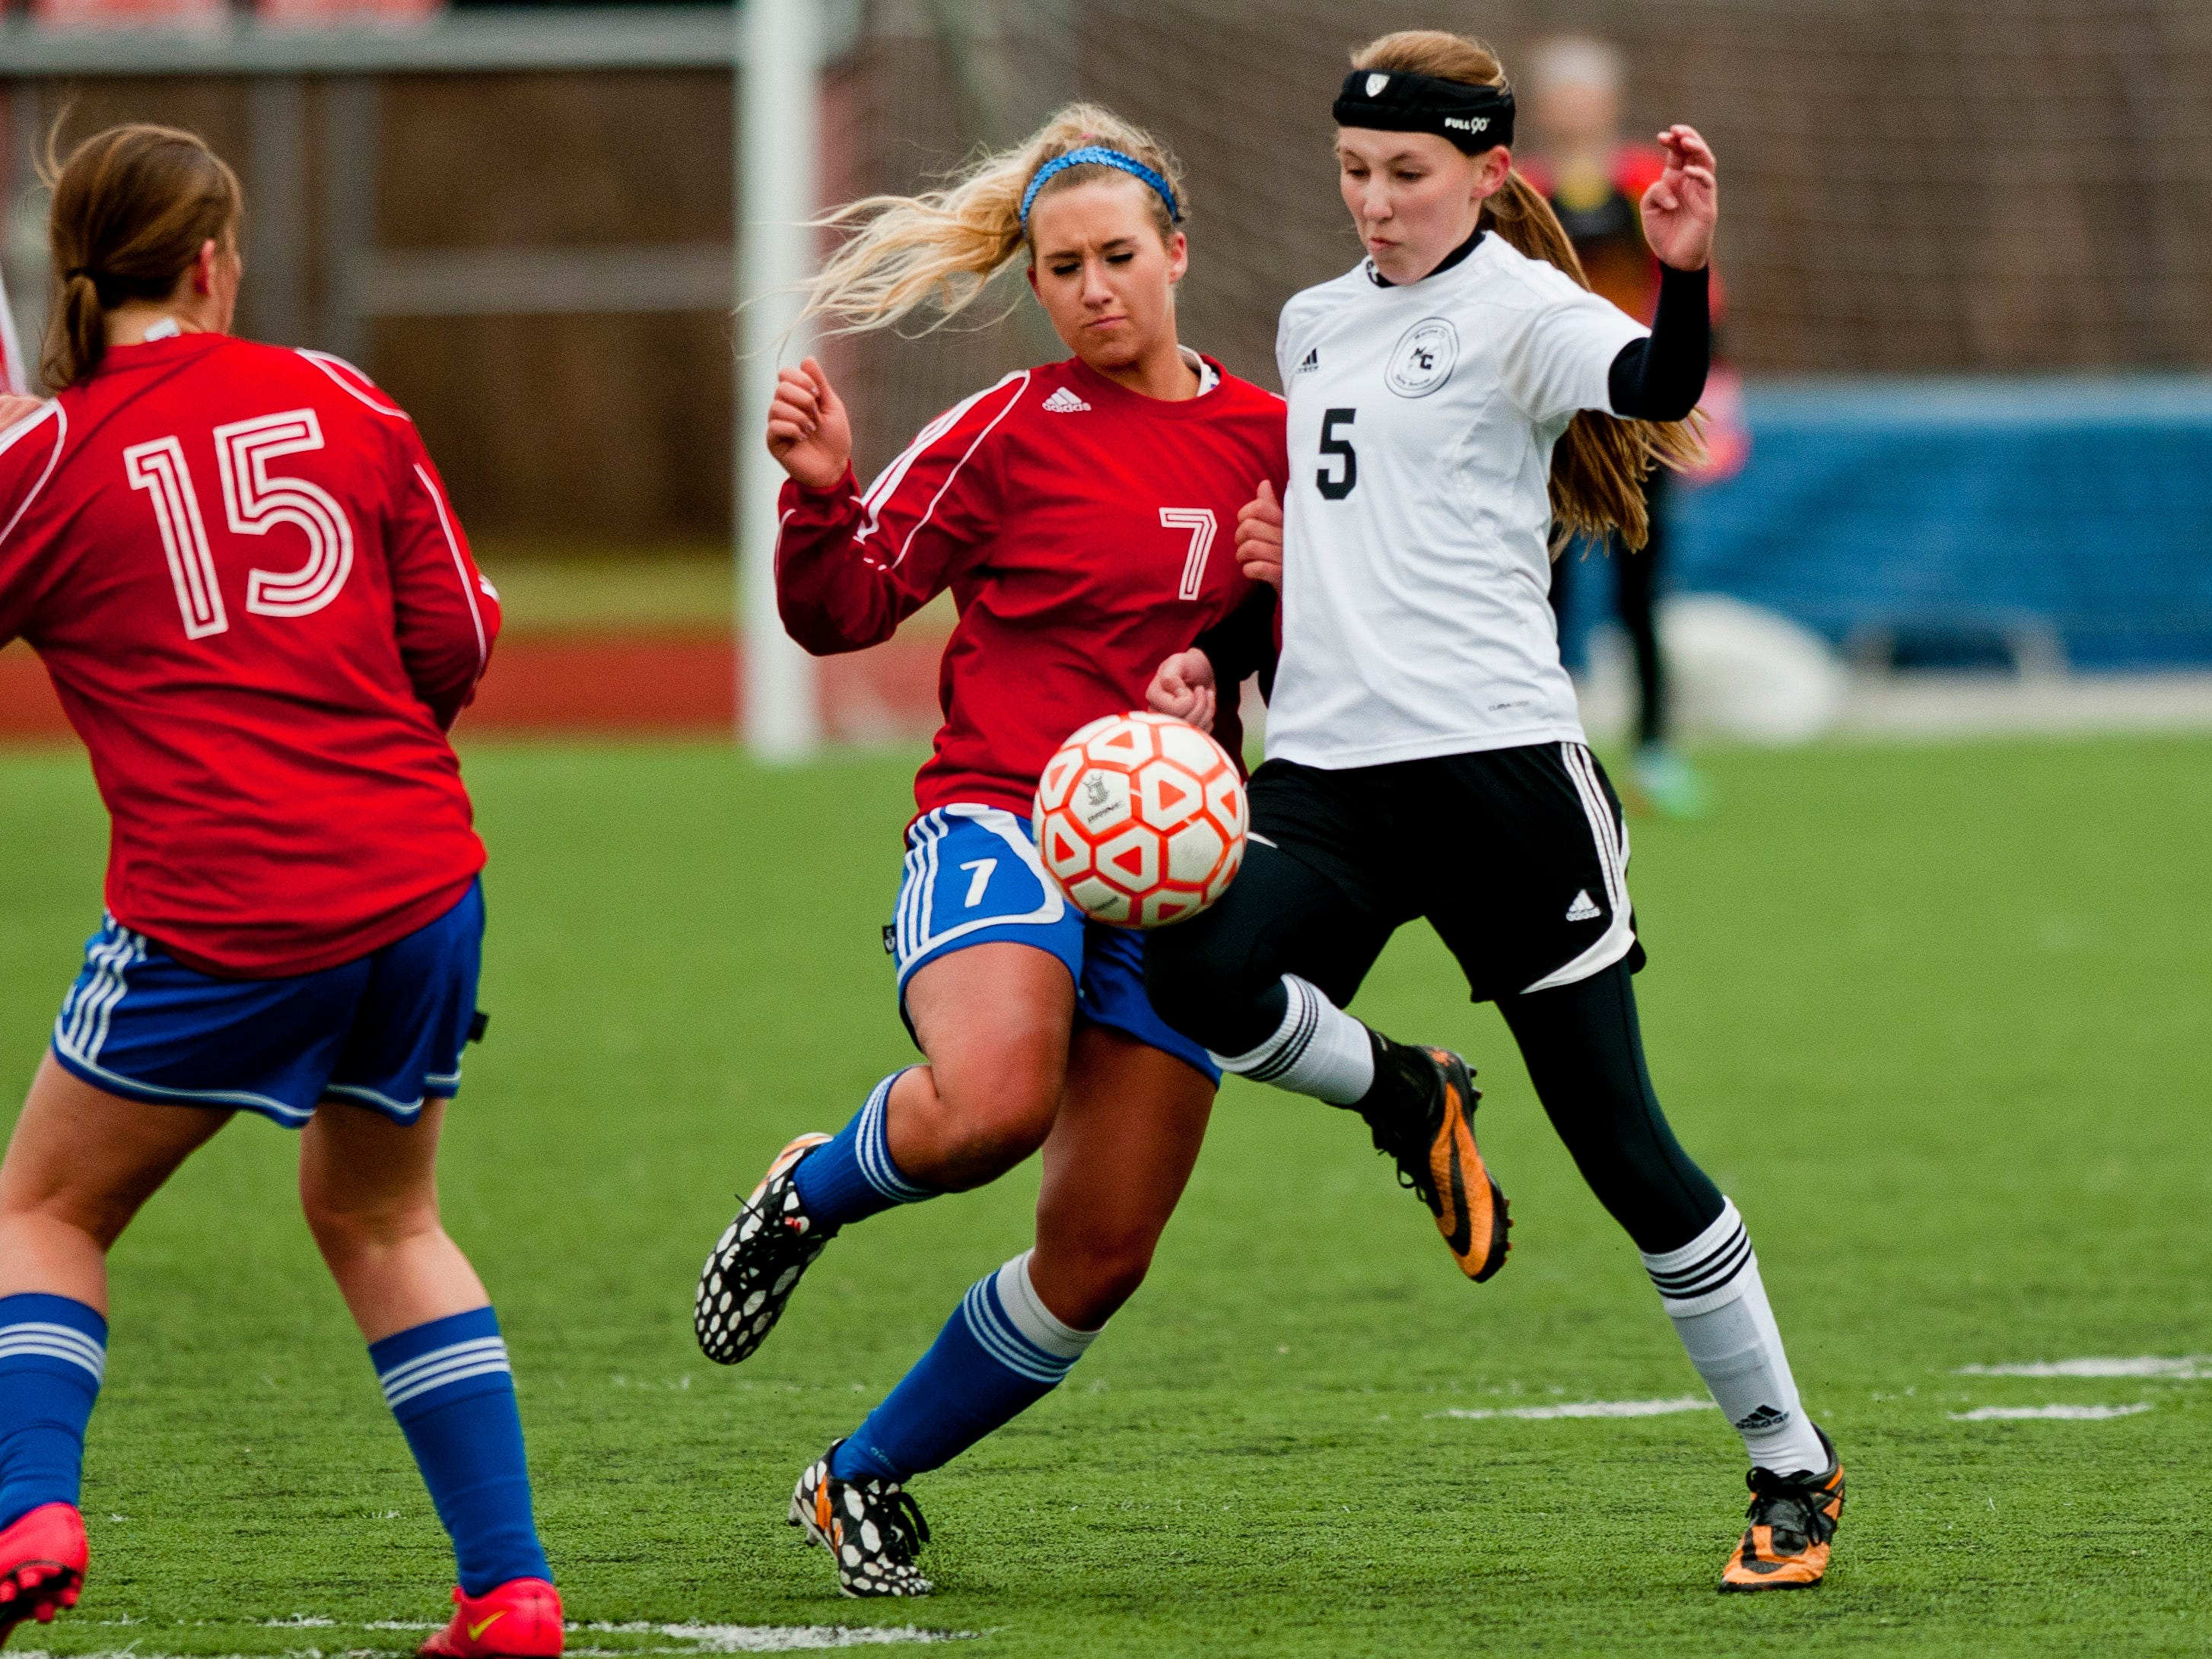 St. Clair's Laura Bluhm and Marine City's Emilie Andrews fight for possession during a soccer game Wednesday at East China Stadium.